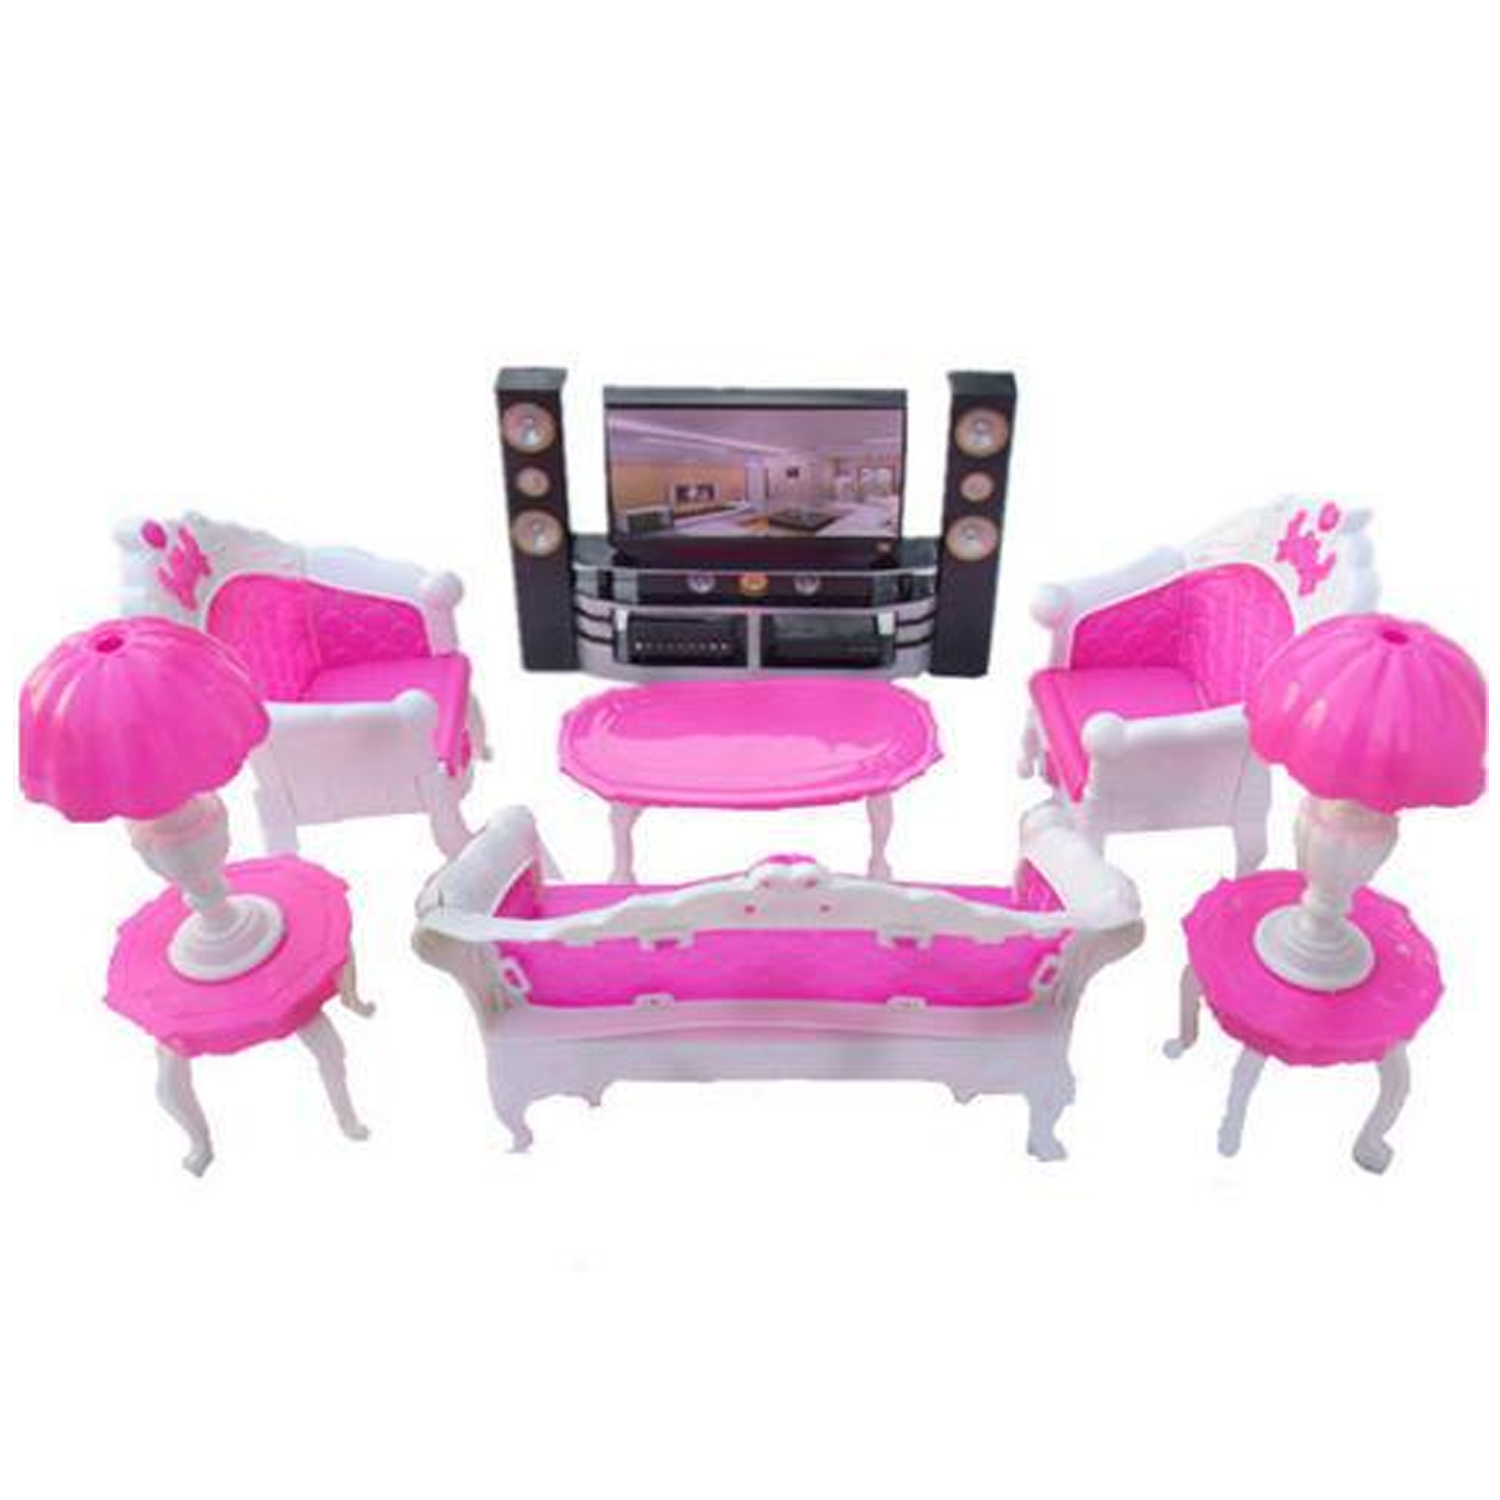 Kids 7PCS Rose Pink Plastic Mini Doll House Sofa Lamps Table TV Cabinet Bedroom Dollhouse Furniture Accessories For Barbie Toy